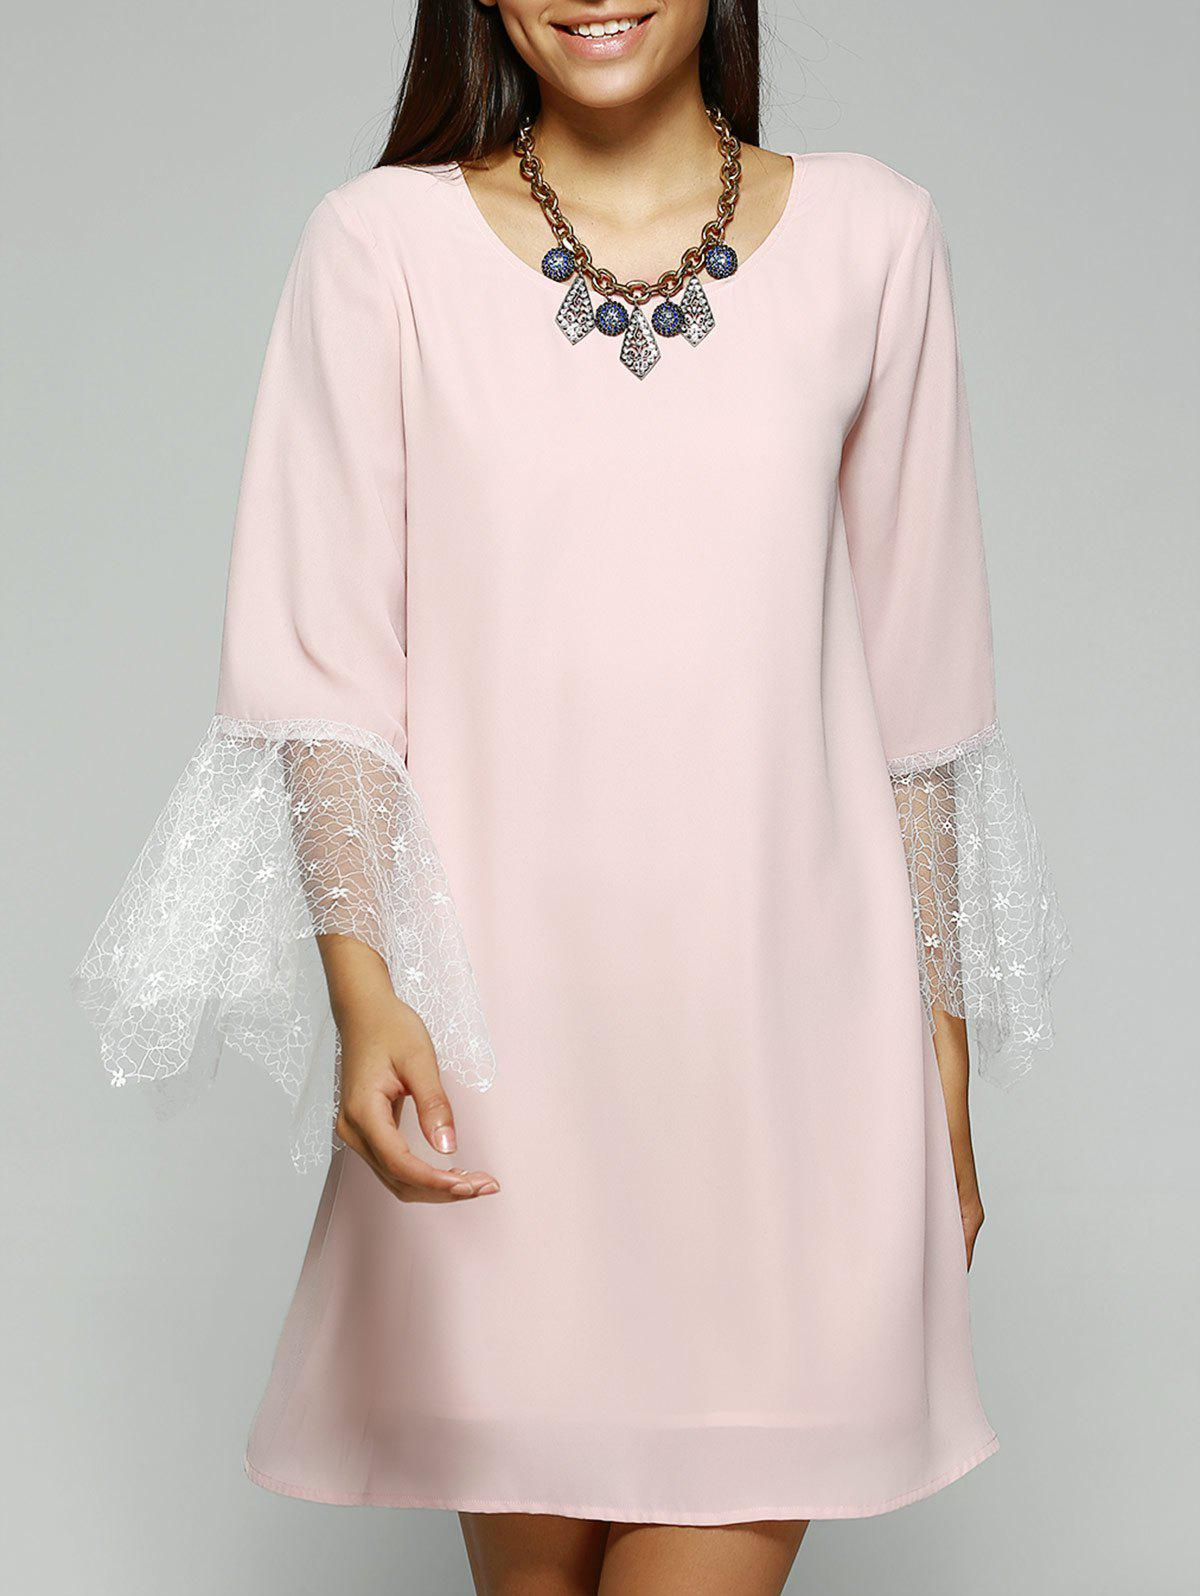 New Simple Style Women's Jewel Neck Laced Pink Dress